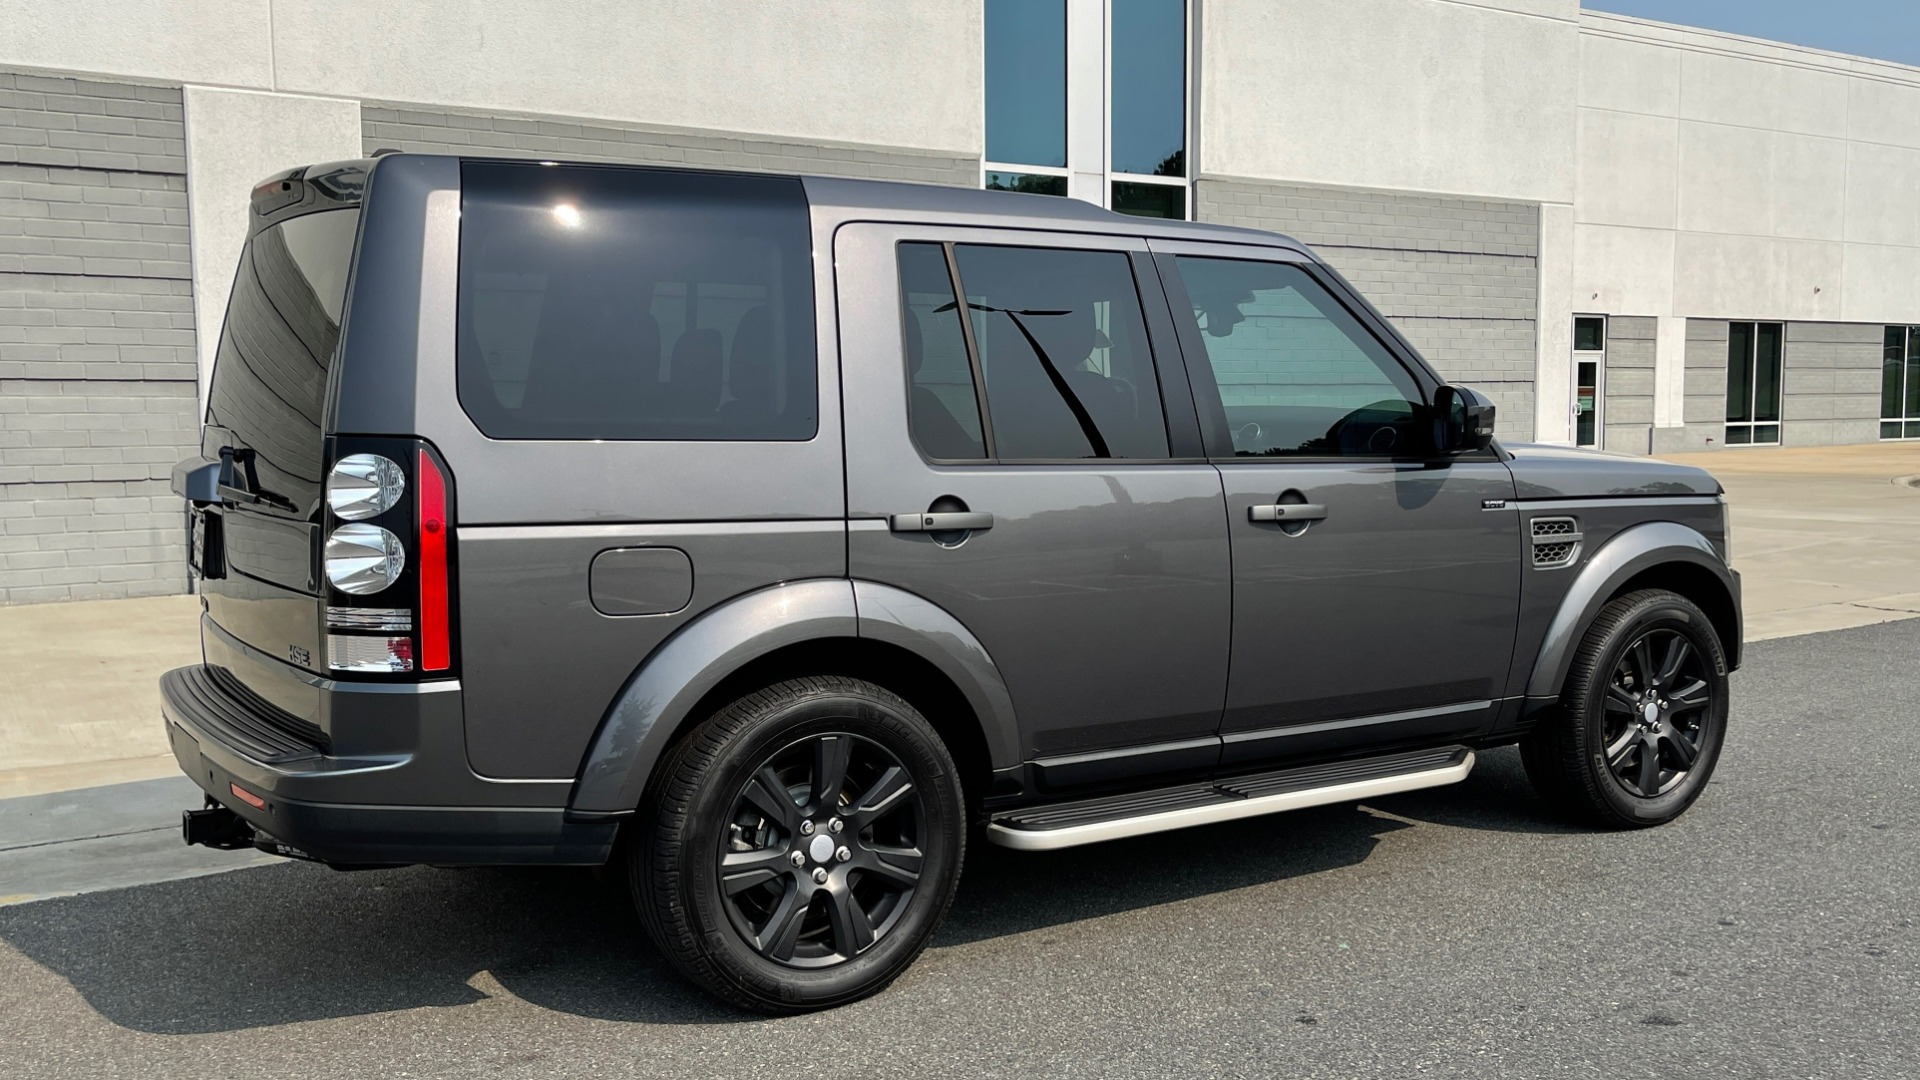 Used 2016 Land Rover LR4 HSE / NAV / SUNROOF / 3-ROW / MERIDIAN SOUND SYS / REARVIEW for sale $30,995 at Formula Imports in Charlotte NC 28227 2